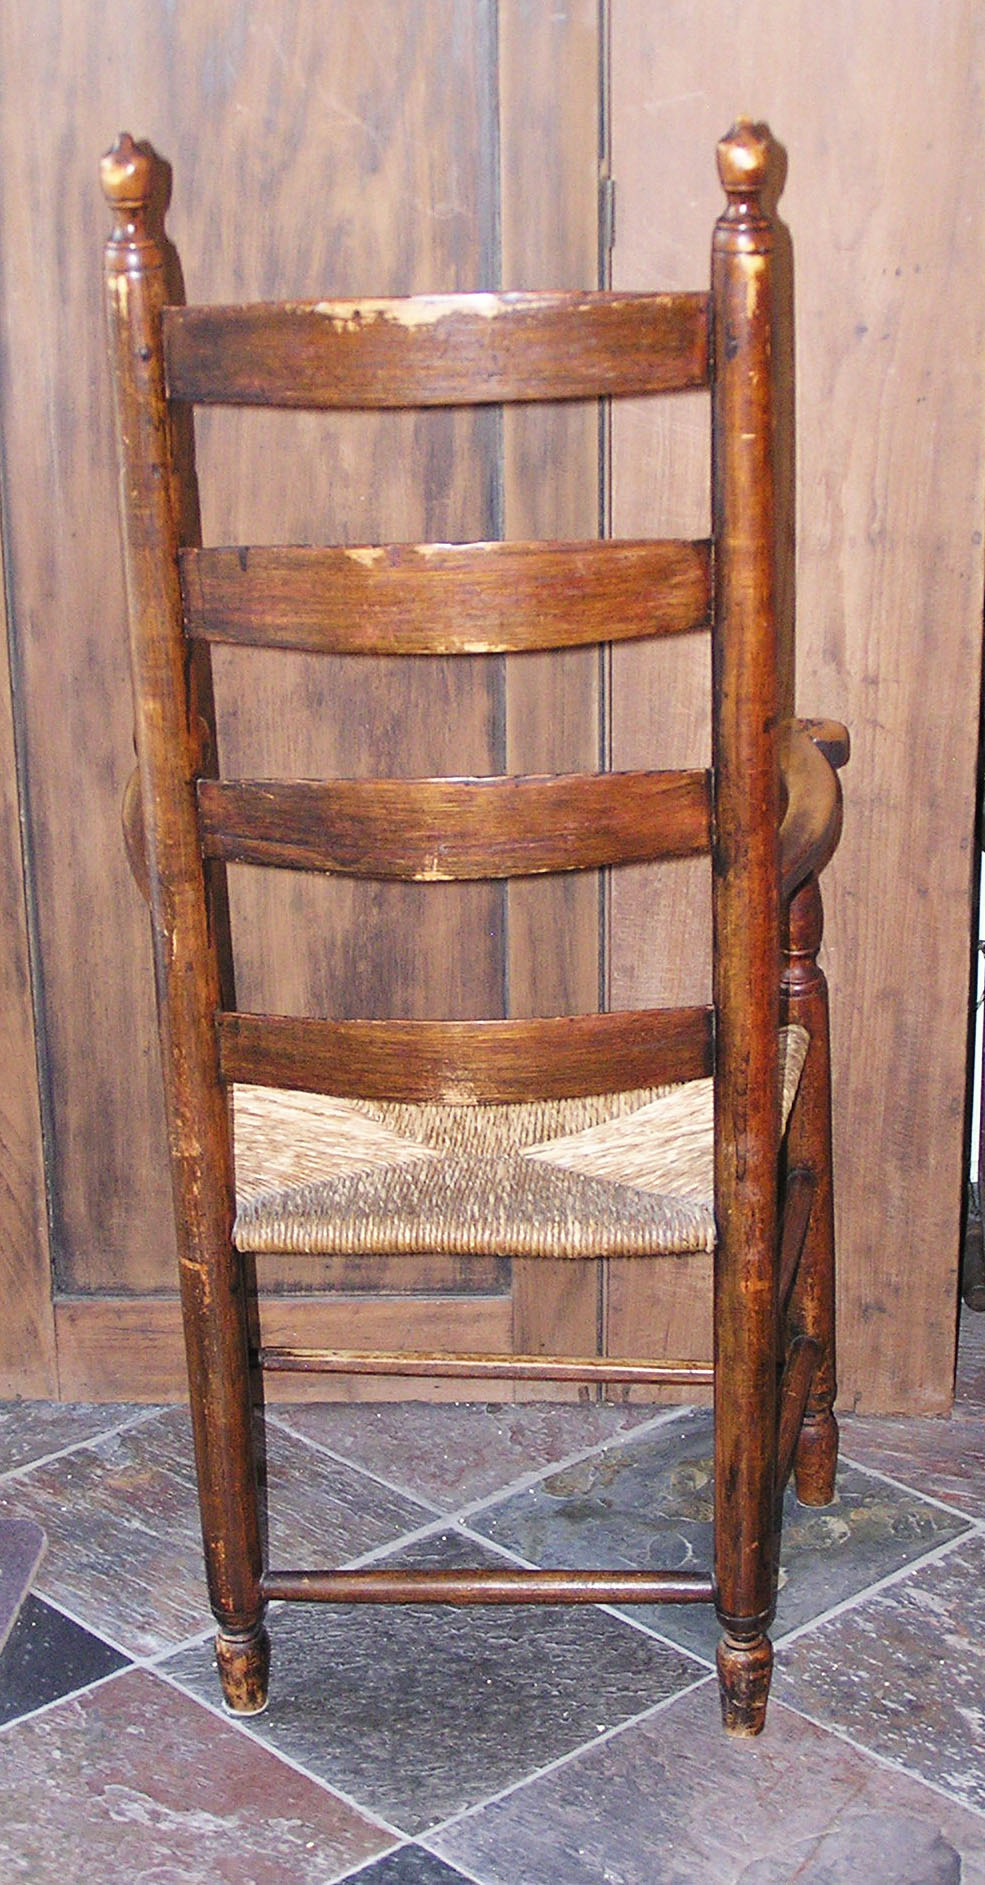 harvard chair for sale bedroom pictures massachusetts shaker style ladder back rush seated arm circa this was found in an old house lancaster ma there a colony directly to the east of and another